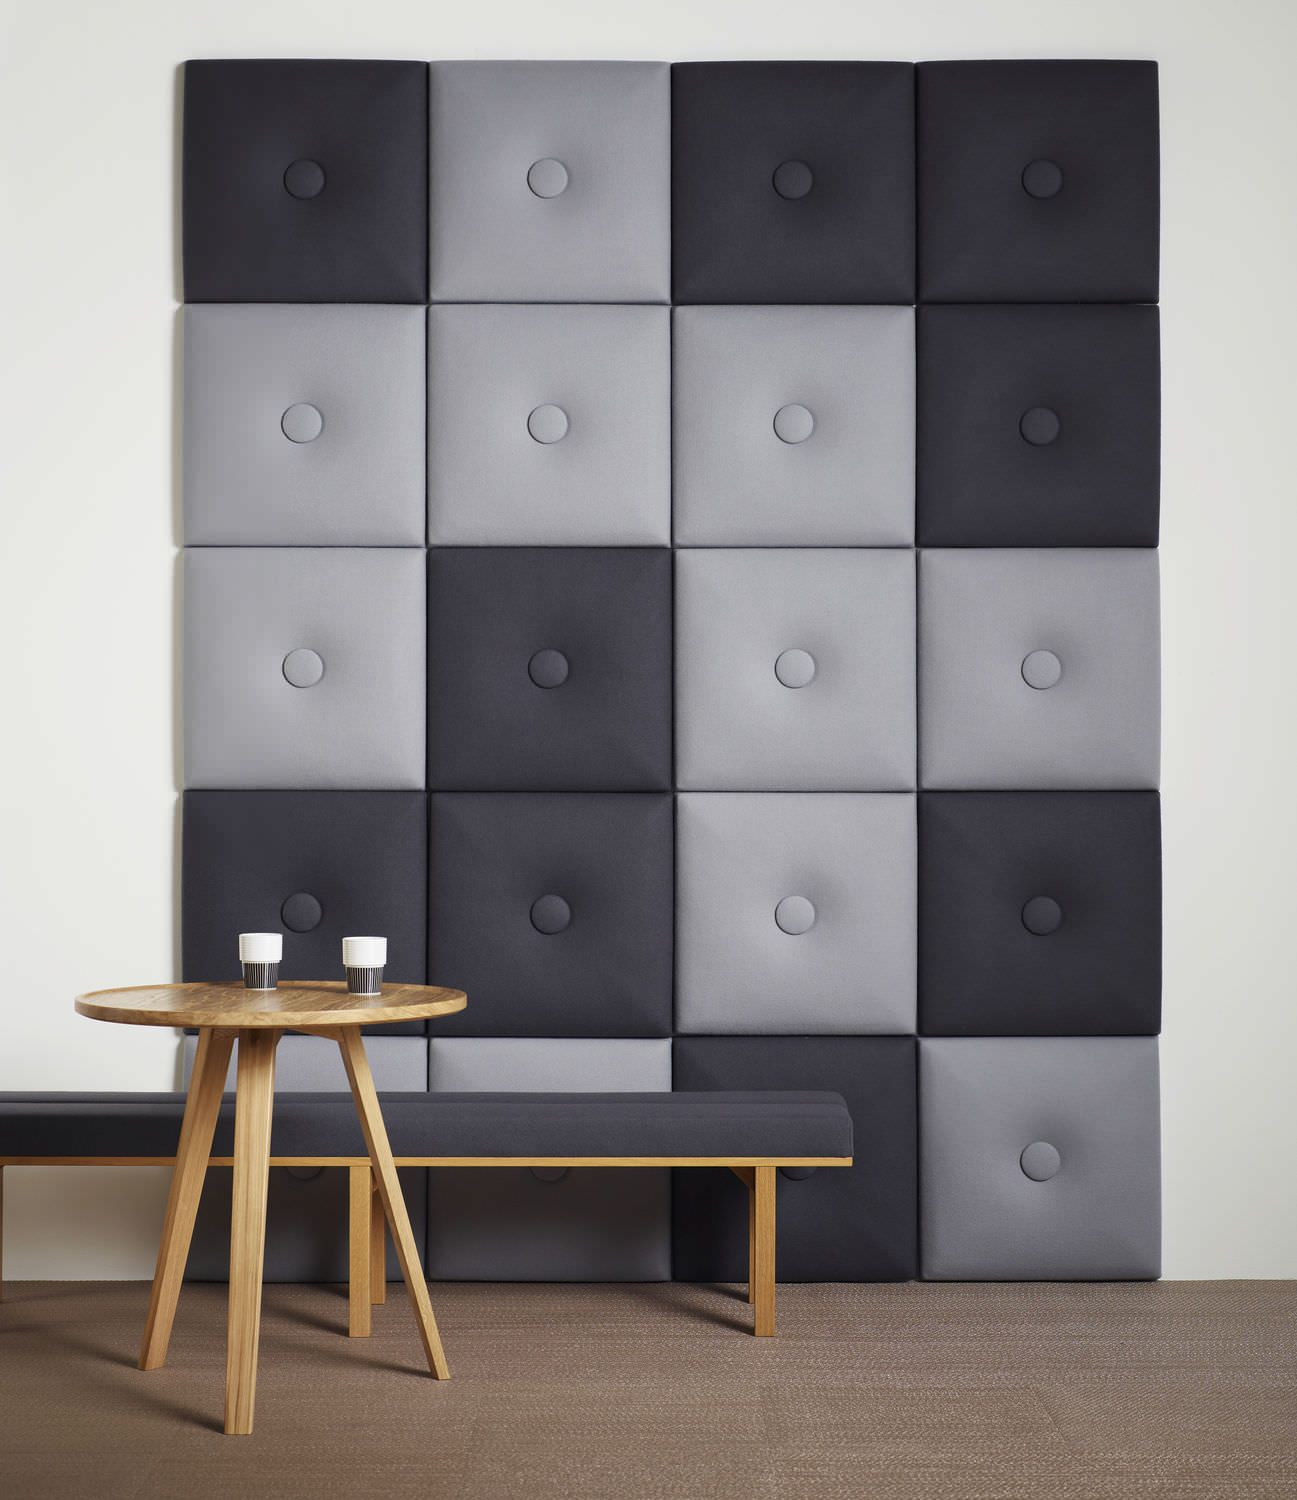 Bedroom Upholstered Wall Panels With Tufted Buttons With Cool Gray Textile Acoustic Panel Design Upholstered Walls Upholstered Wall Panels Acoustic Panels